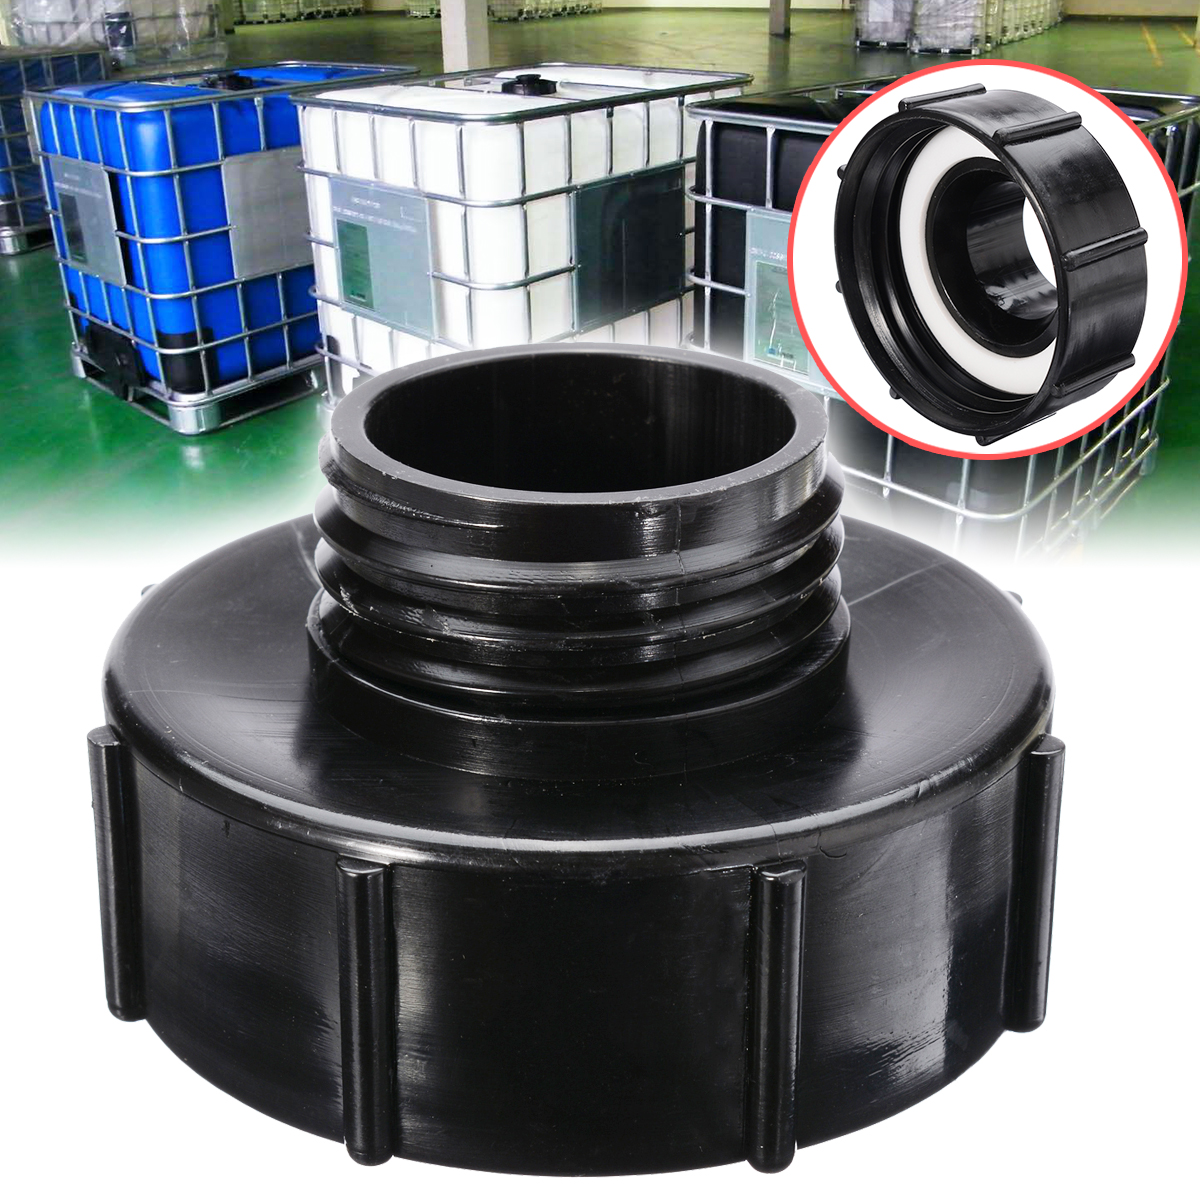 IBC Adapter S100x8 To Reduce S60x6 IBC Tank Connector Adapter Replacement Garden Water Connectors Black